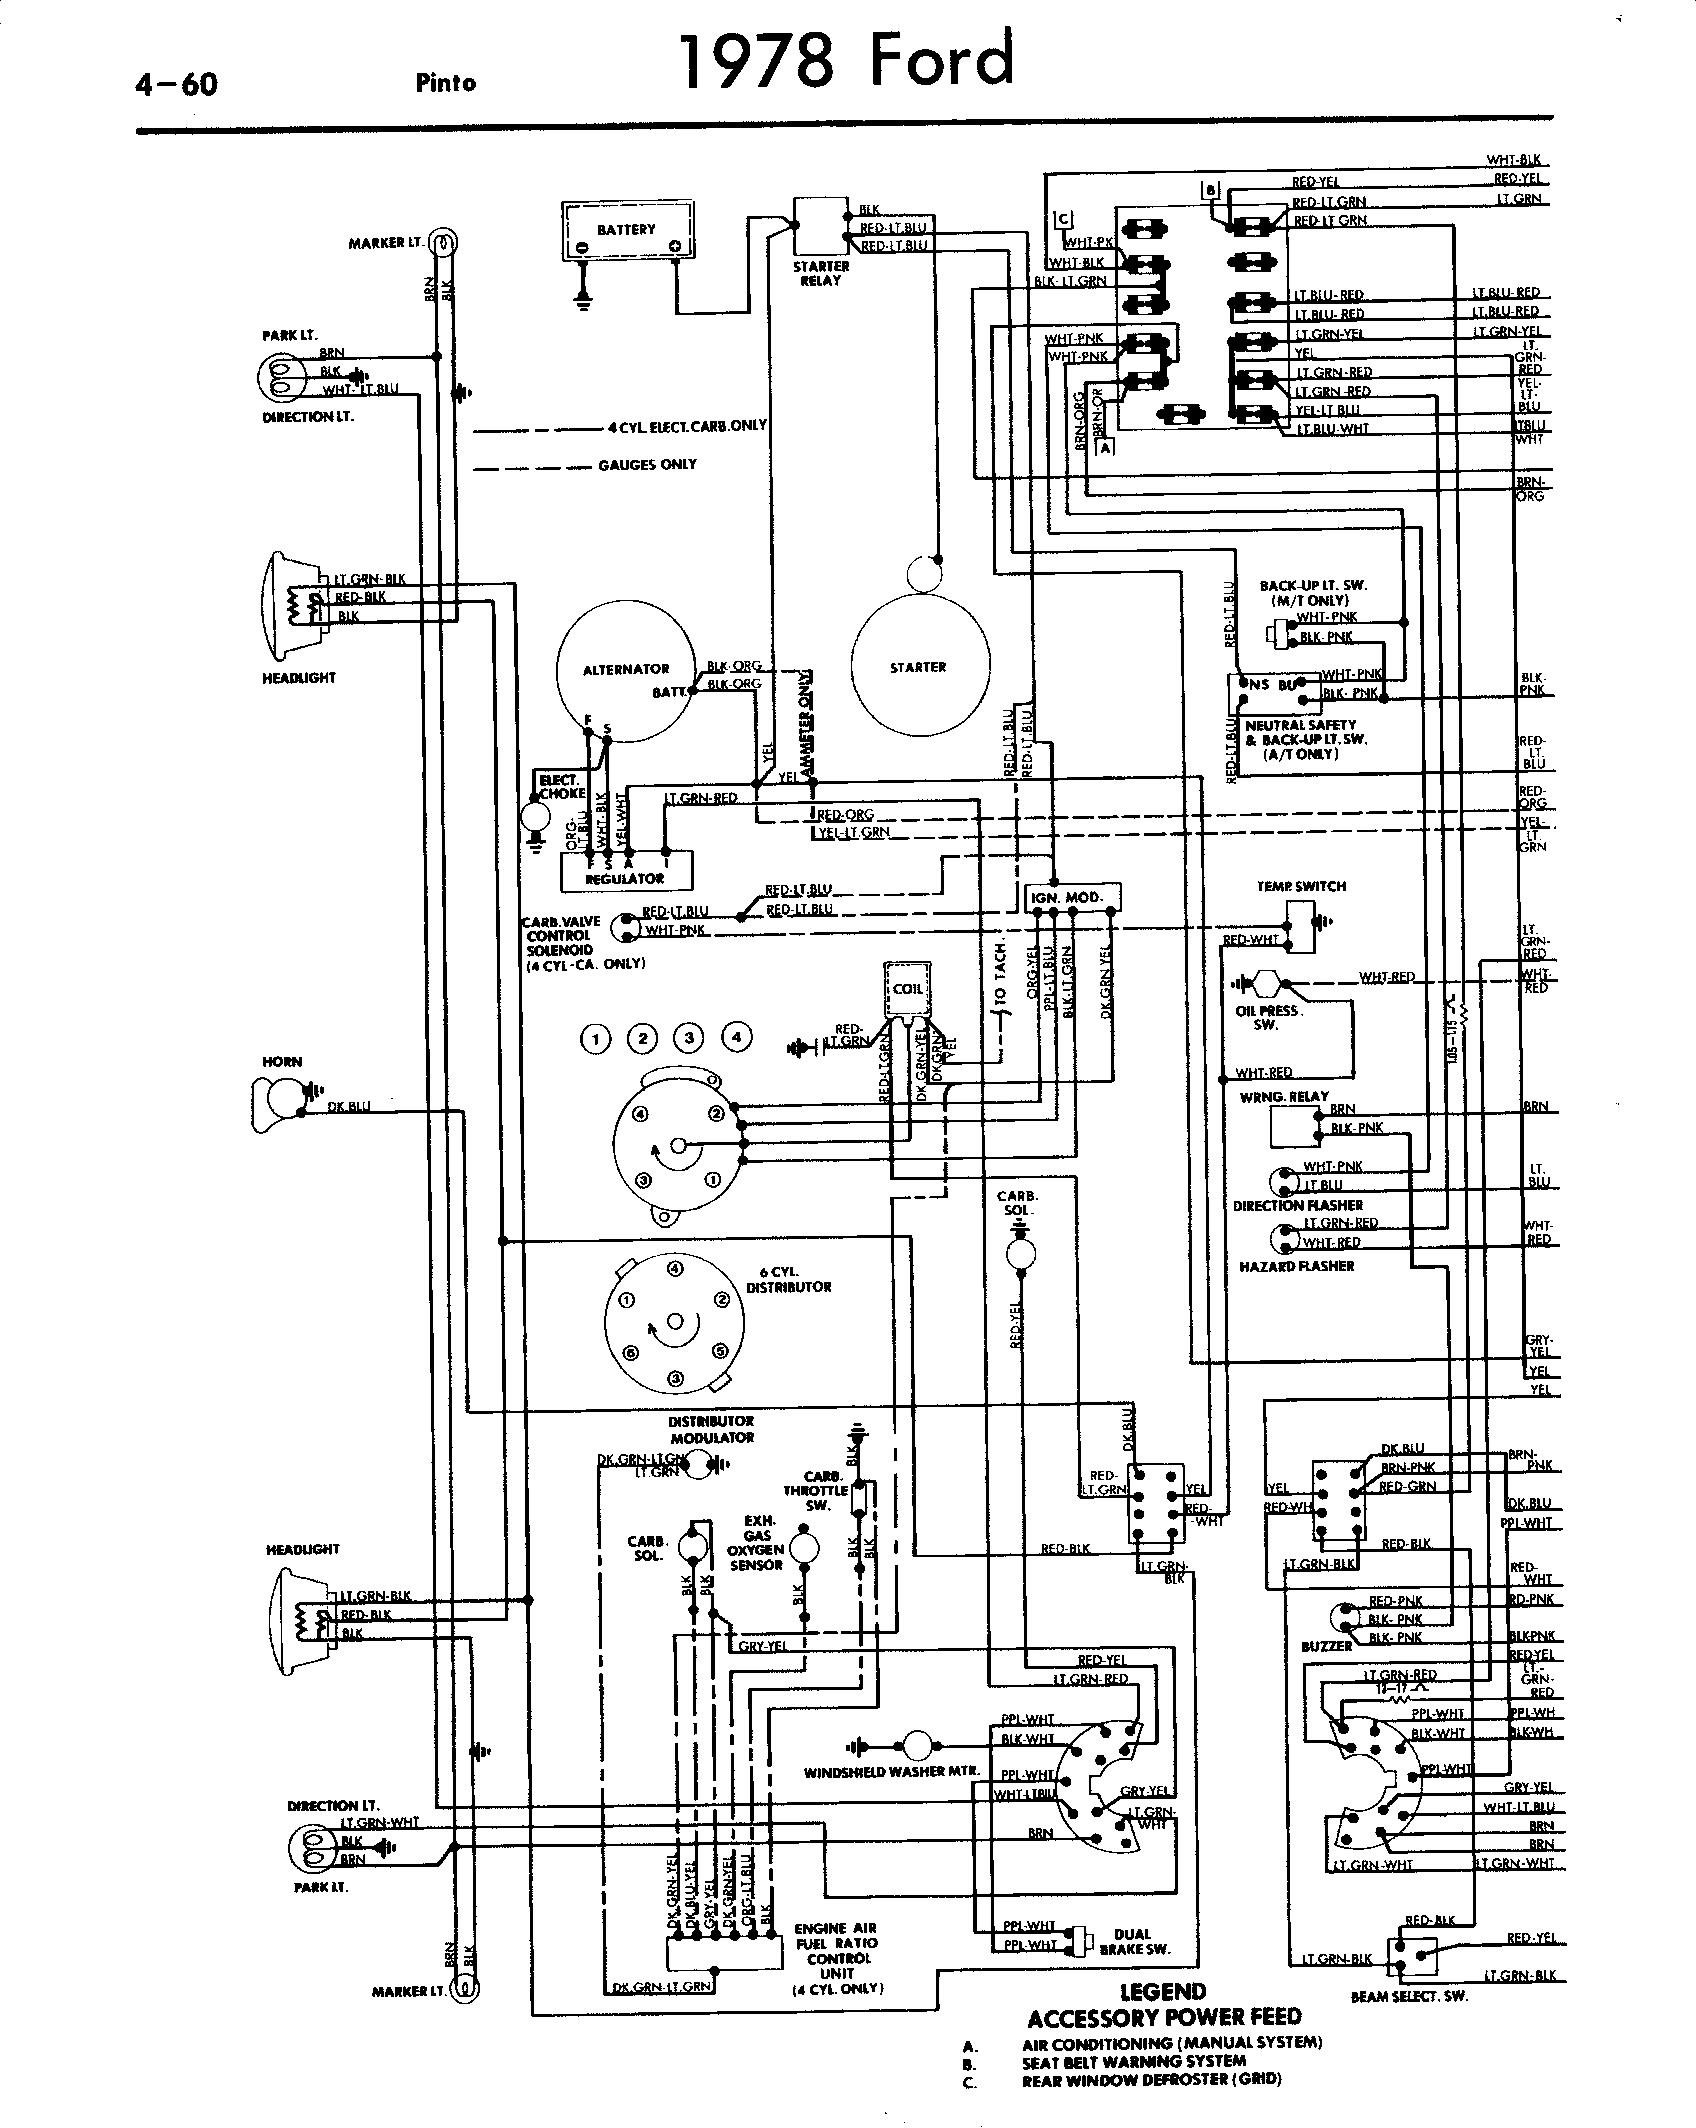 Wiring Diagram For 74 Pinto Archive Of Automotive 76 Nova Starter Books U2022 Rh Mattersoflifecoaching Co